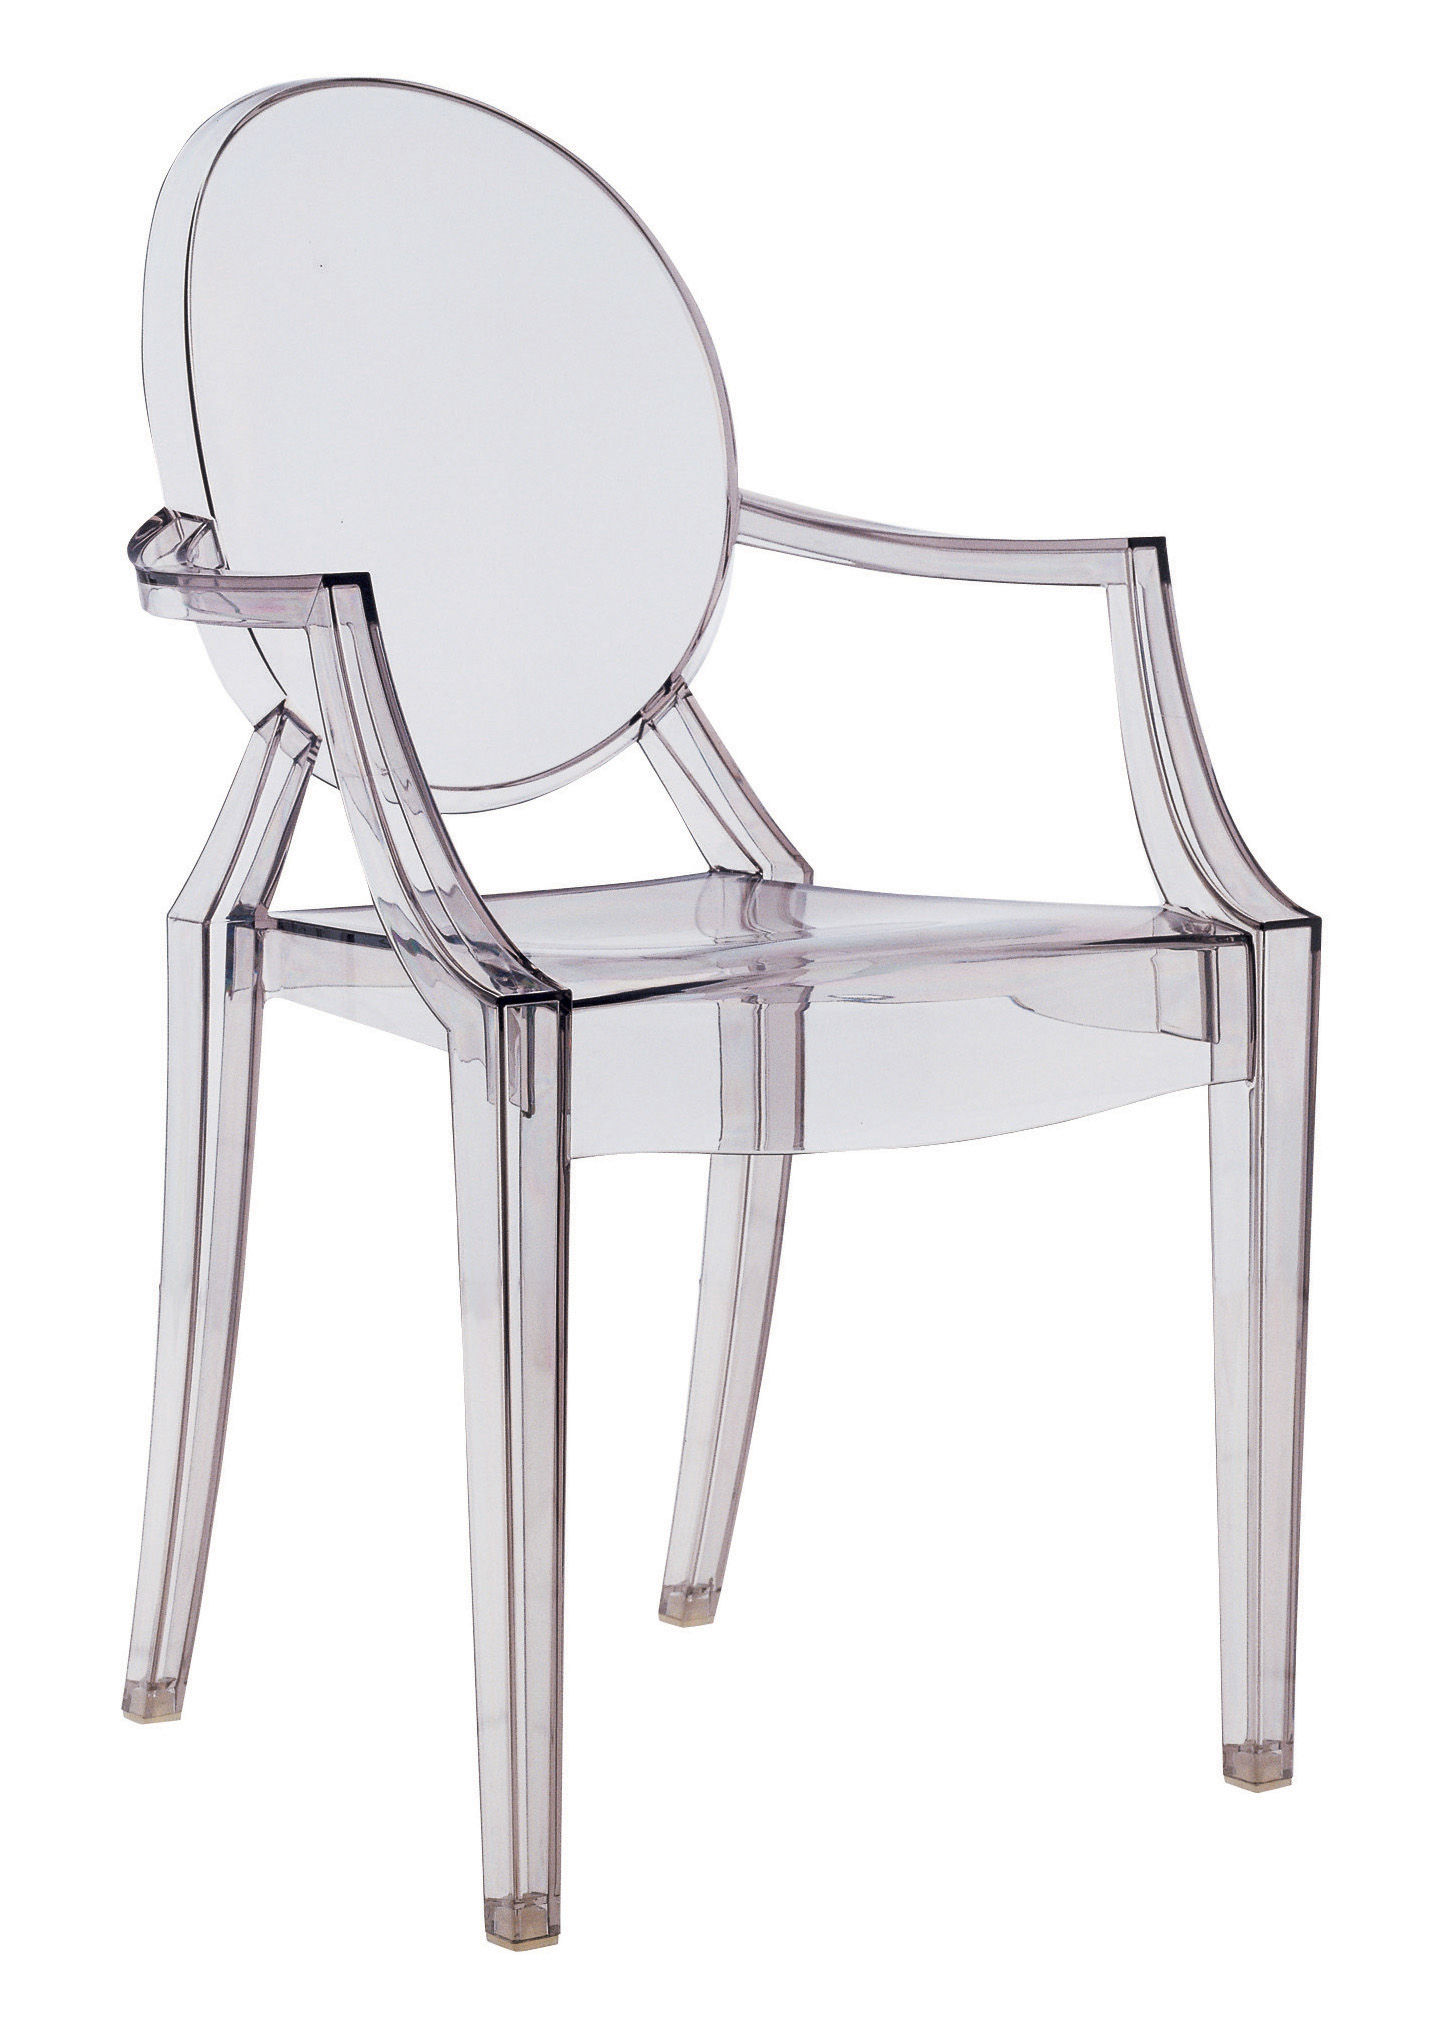 fauteuil empilable louis ghost polycarbonate fum transparent kartell. Black Bedroom Furniture Sets. Home Design Ideas